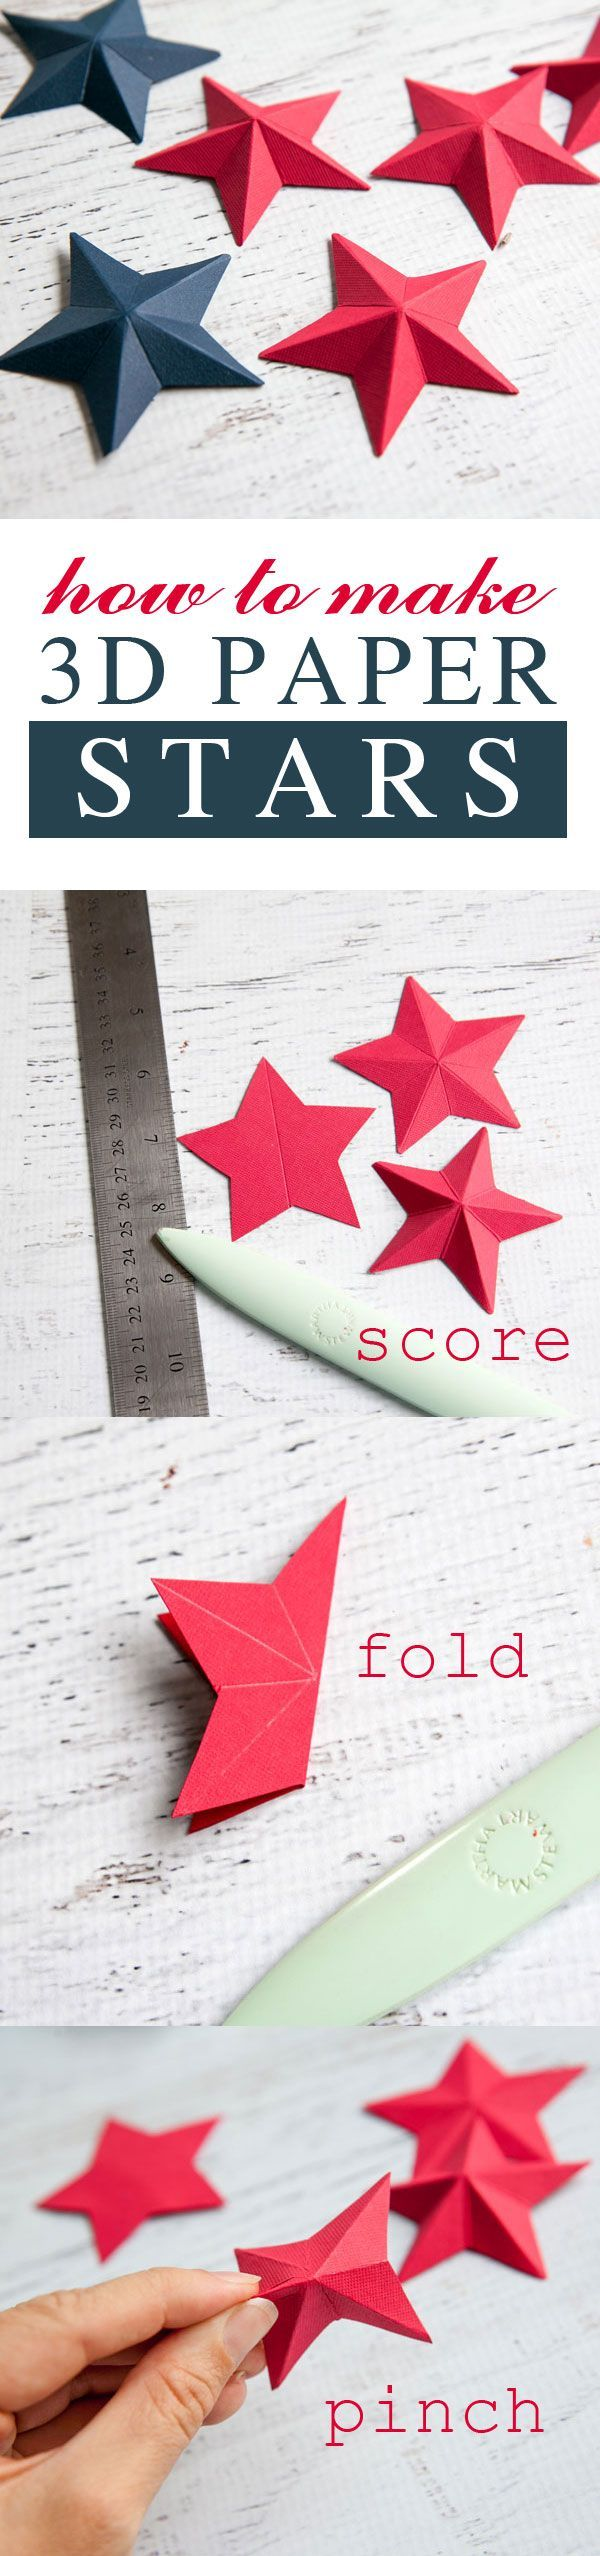 How to make a 3d star christmas decoration - How To Make 3d Paper Stars Start With A Star Shape Score Five Times